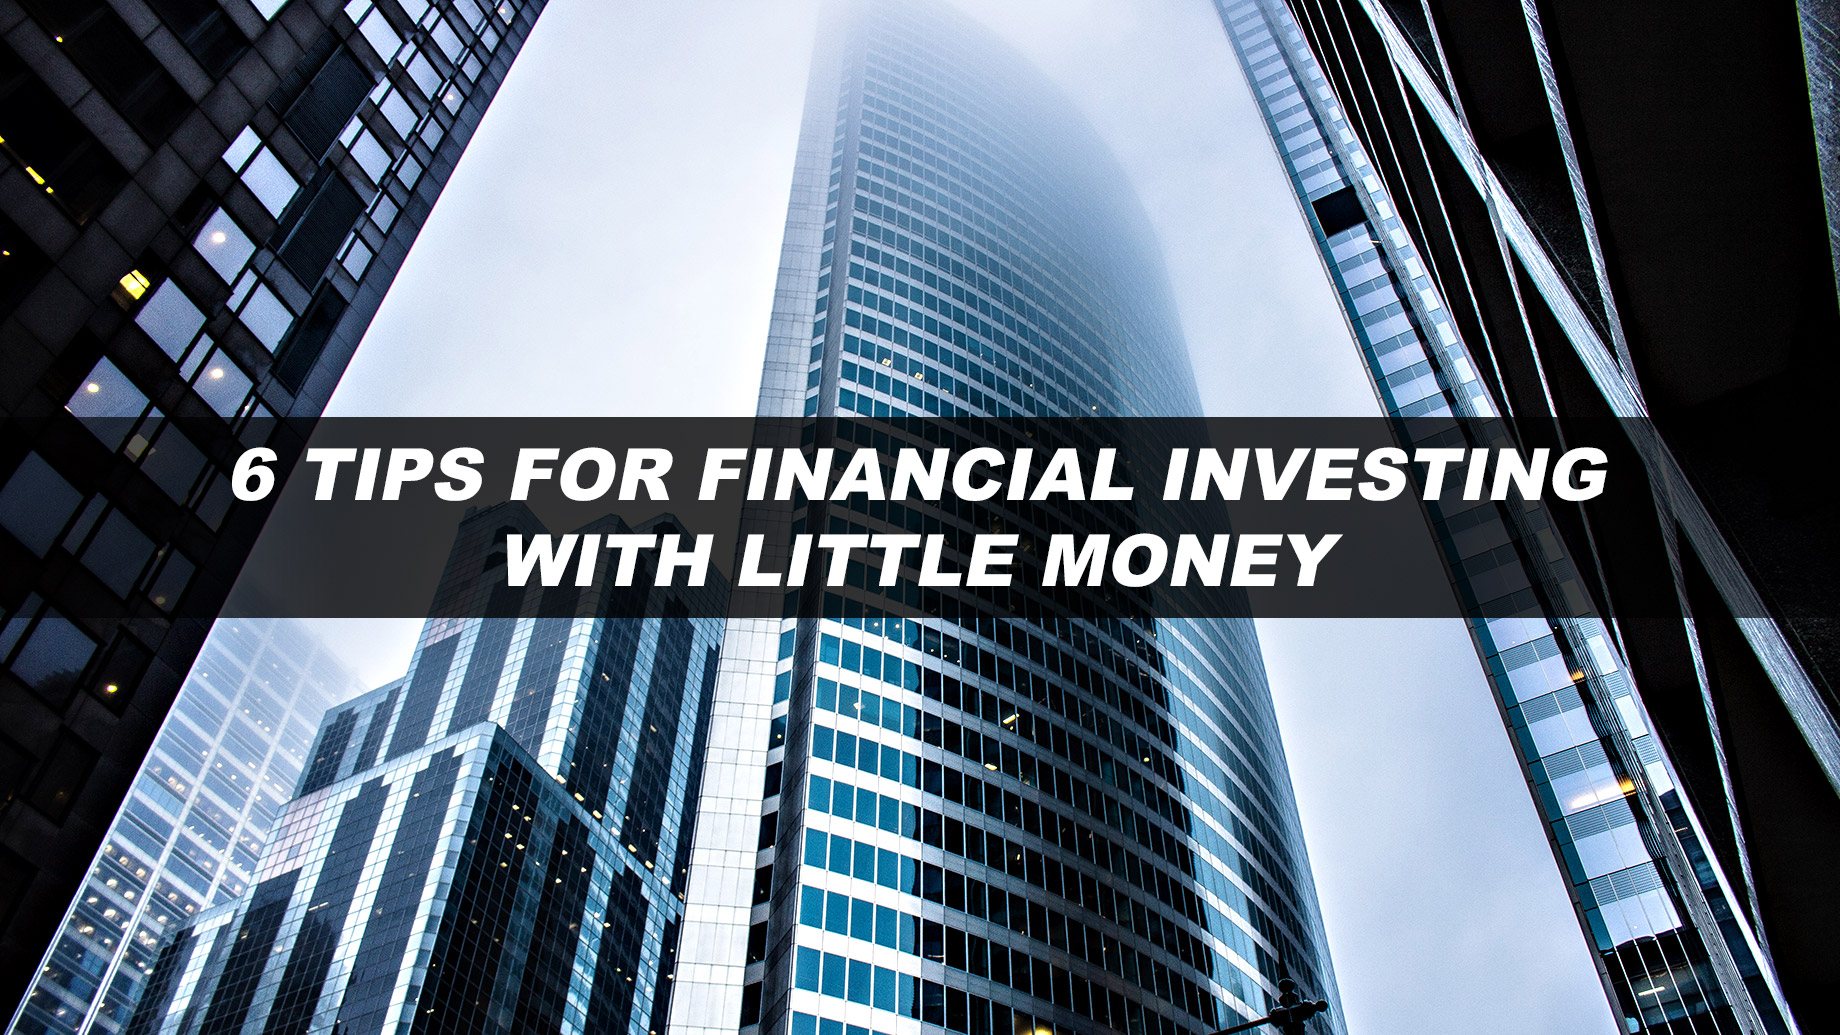 6 Tips For Financial Investing With Little Money